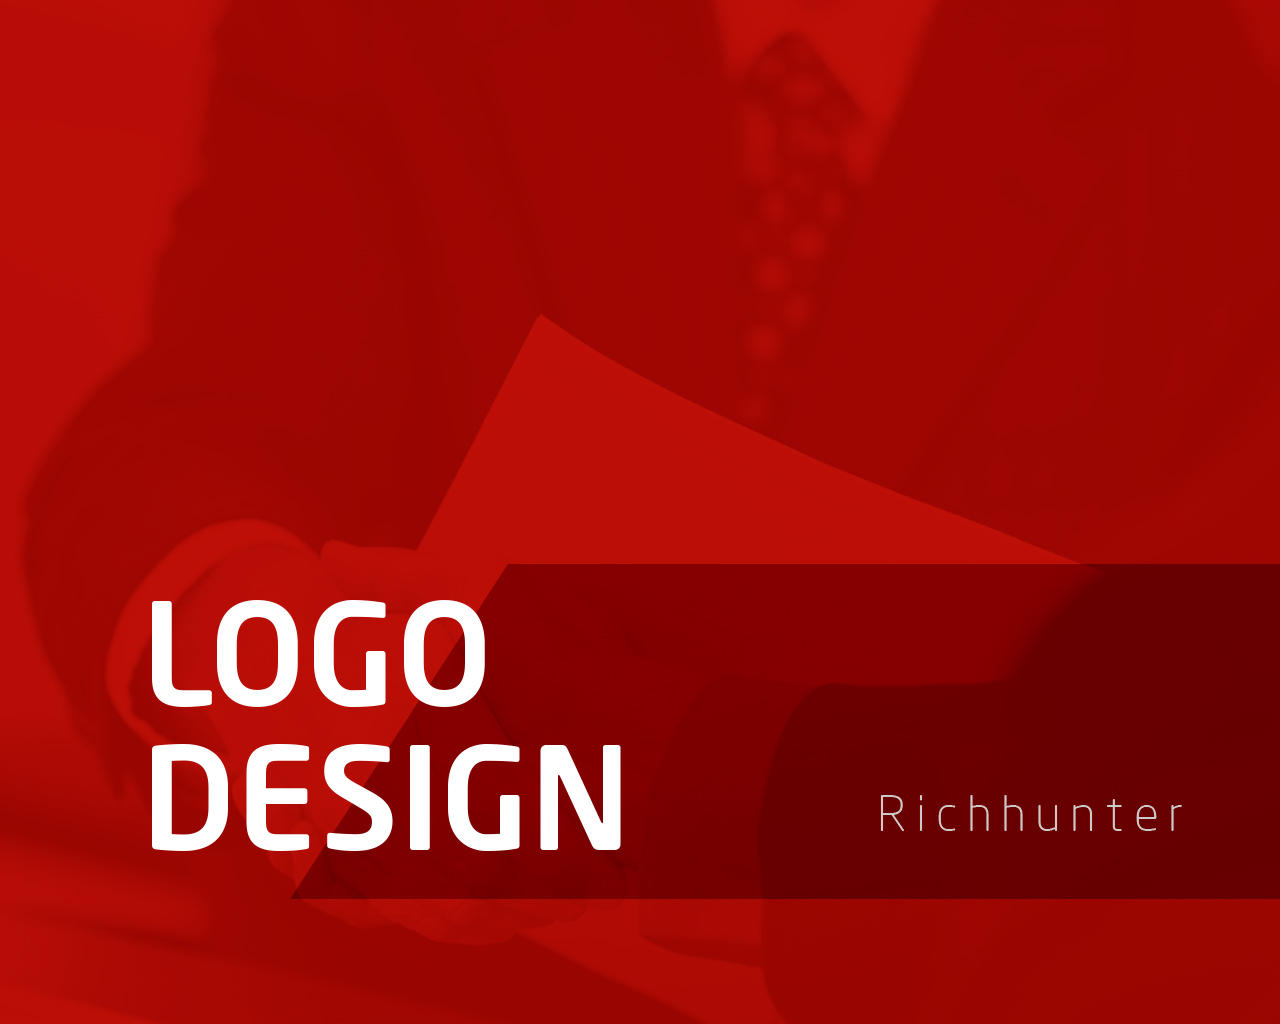 Professional and Unique Logo Design by Richhunter - 91799